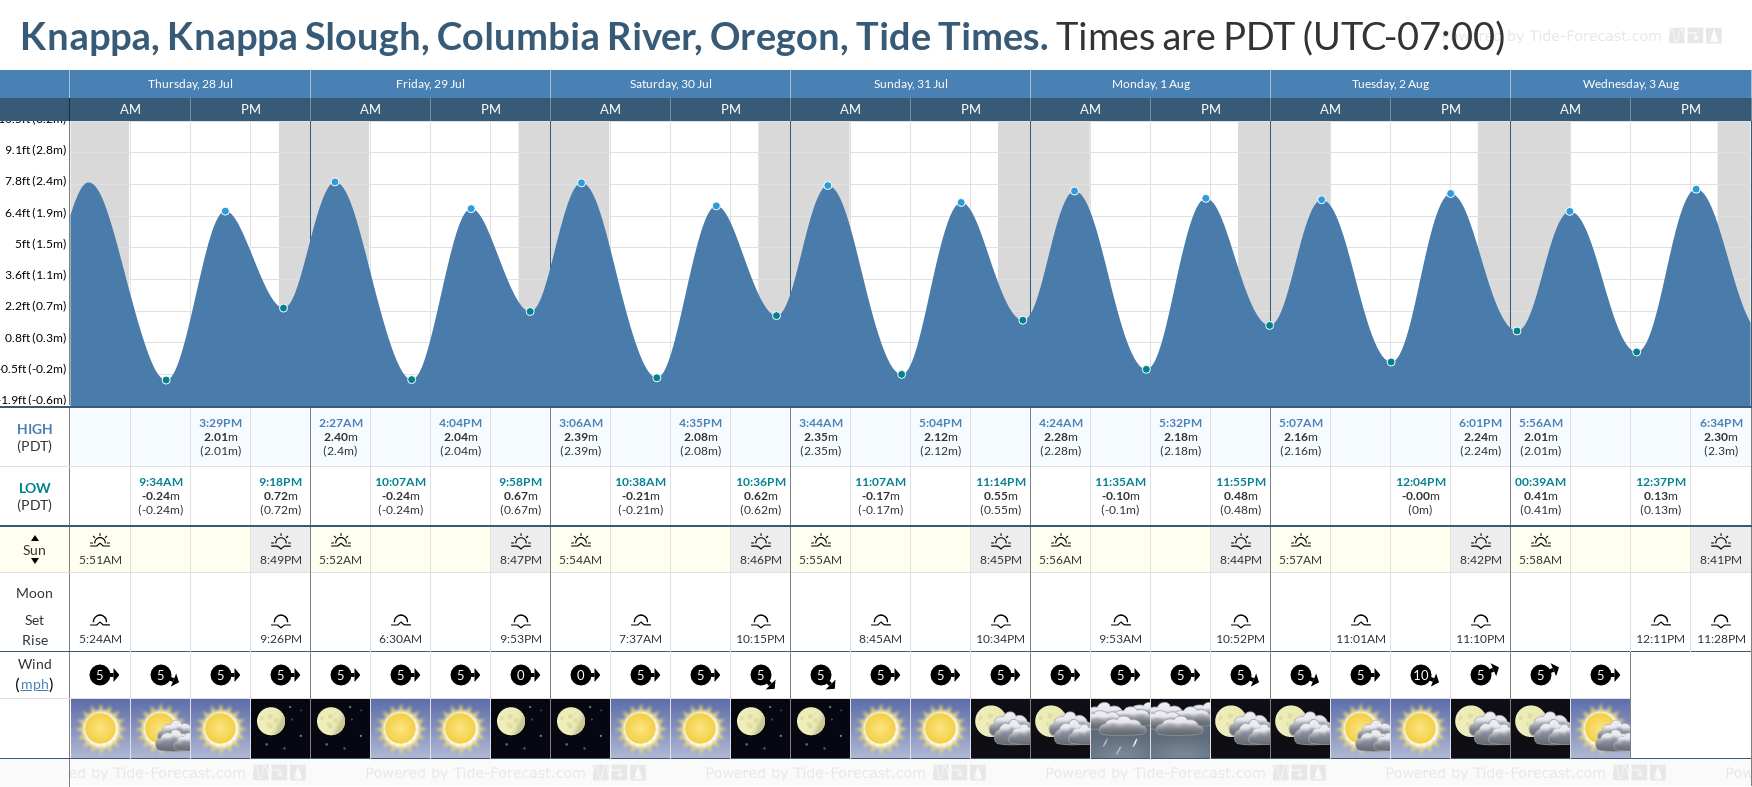 Knappa, Knappa Slough, Columbia River, Oregon Tide Chart including high and low tide tide times for the next 7 days